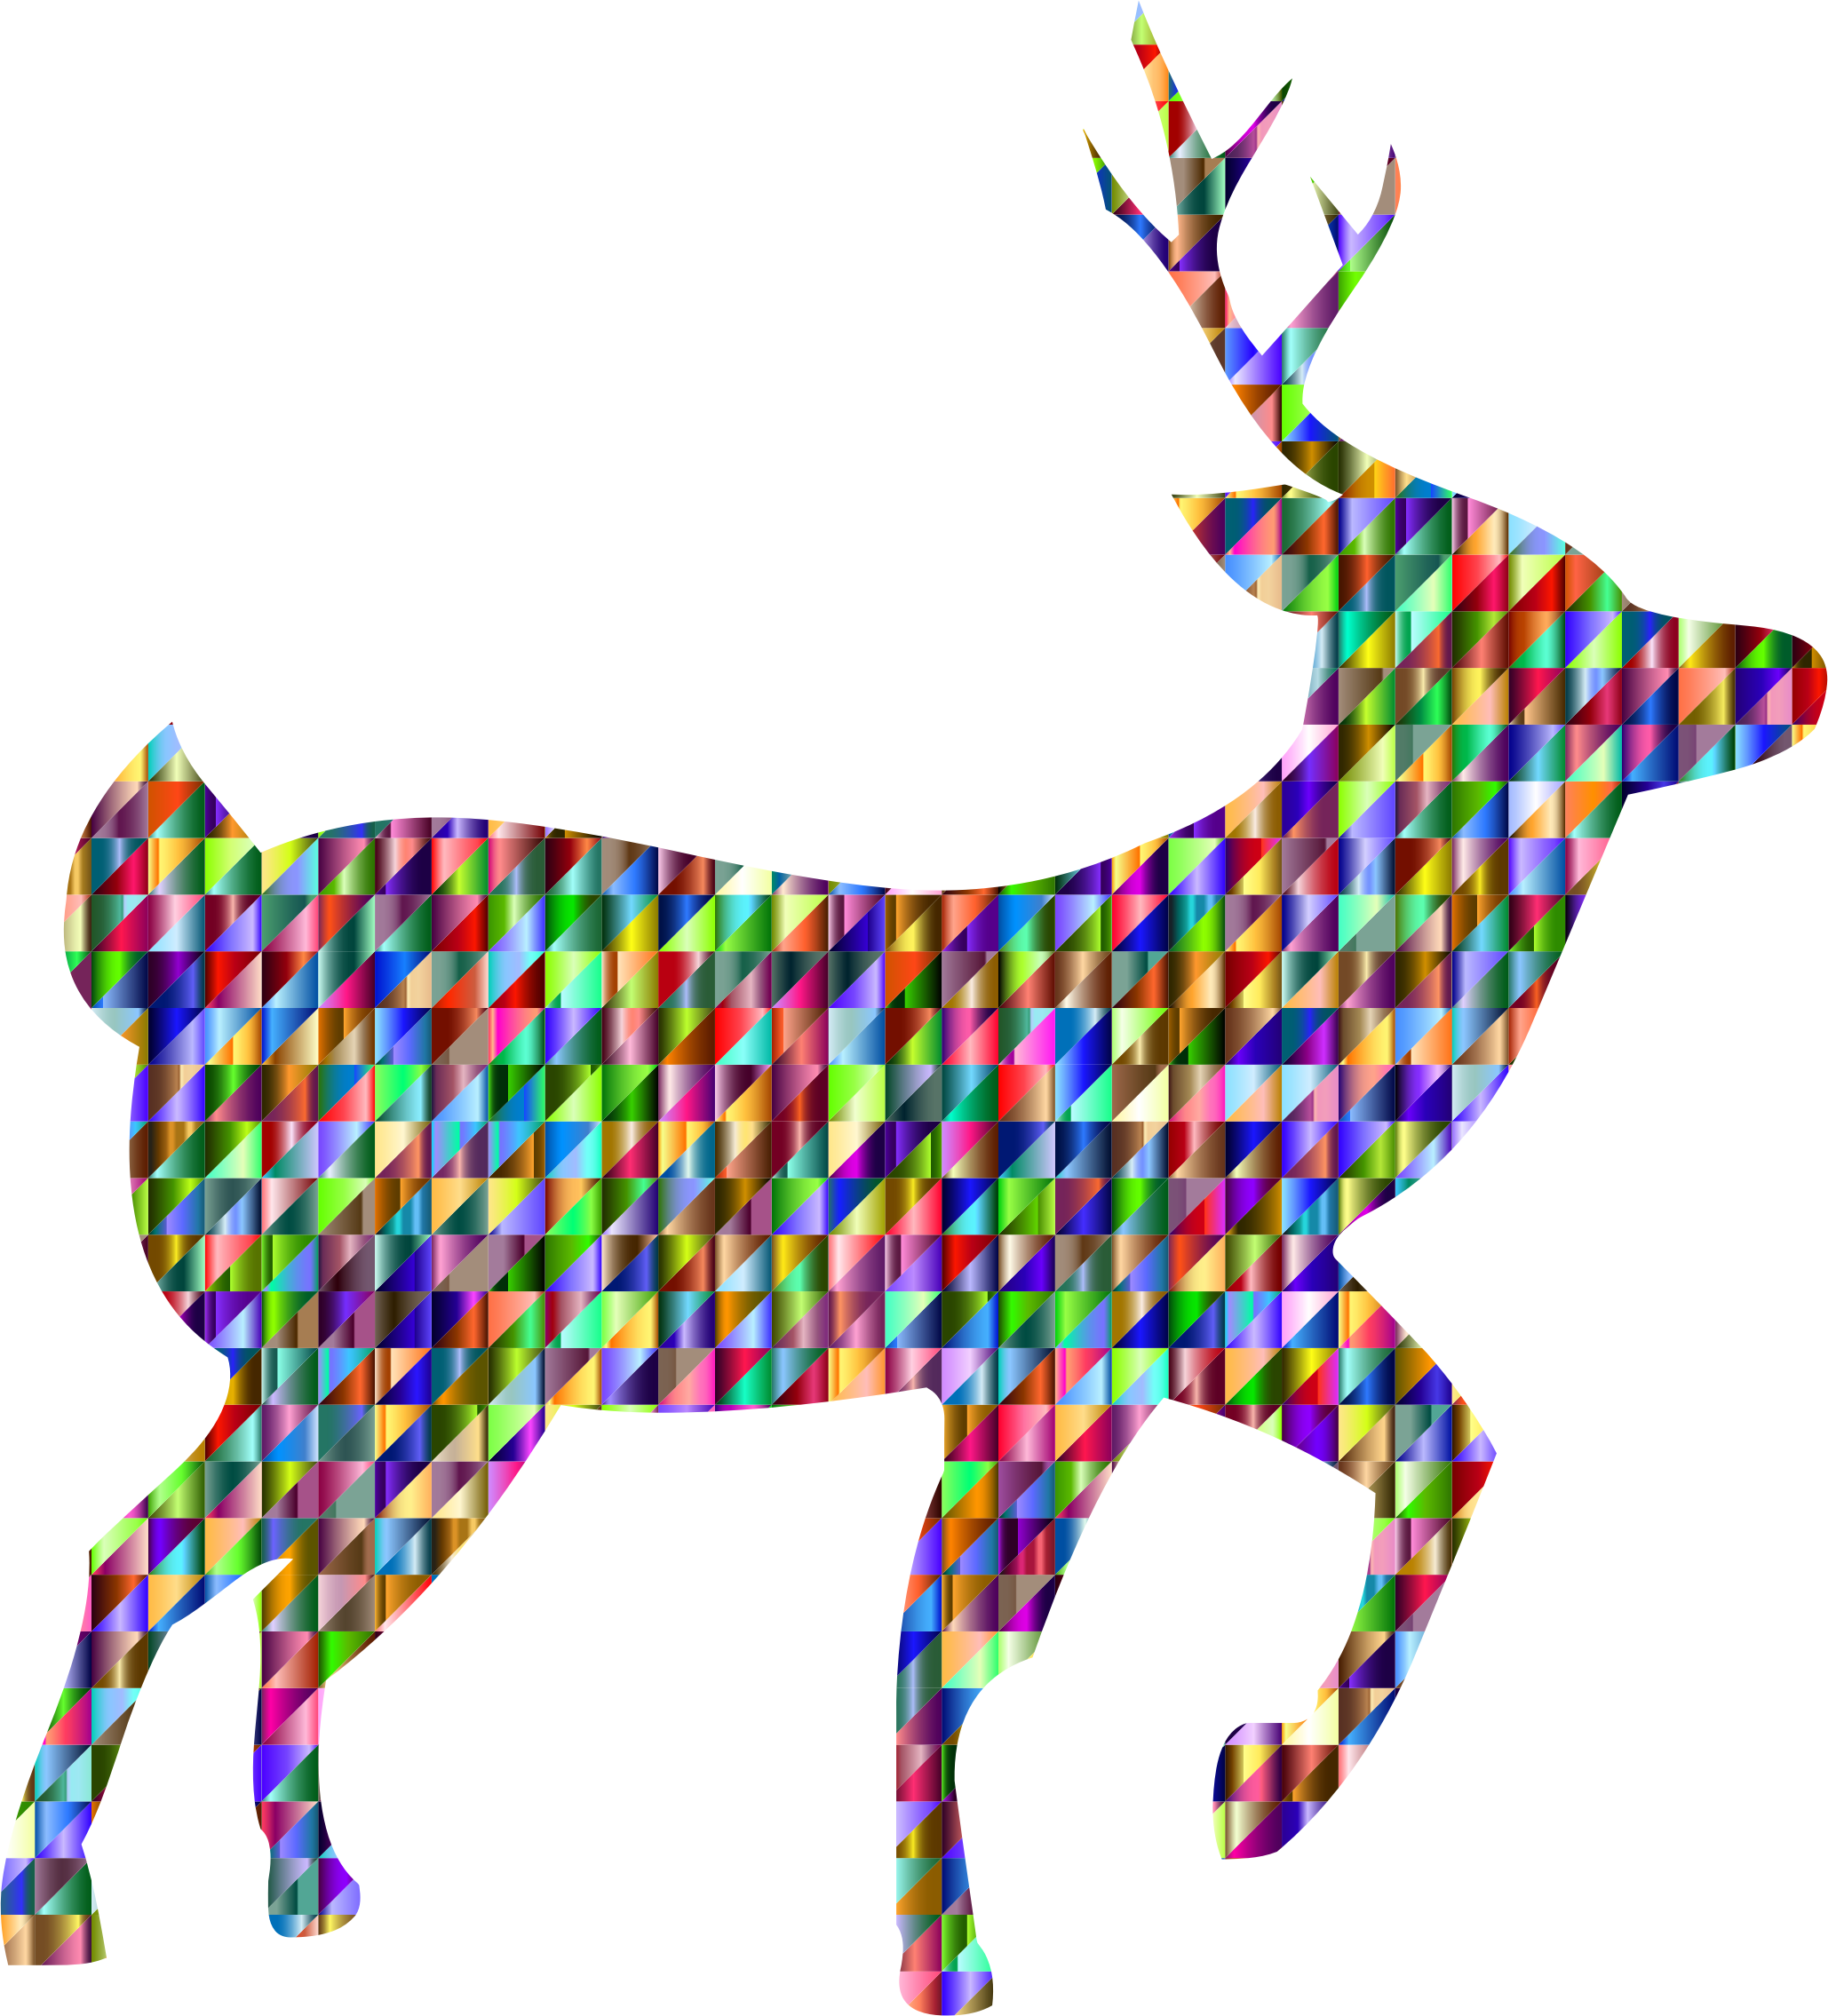 Chromatic Triangular Deer by GDJ